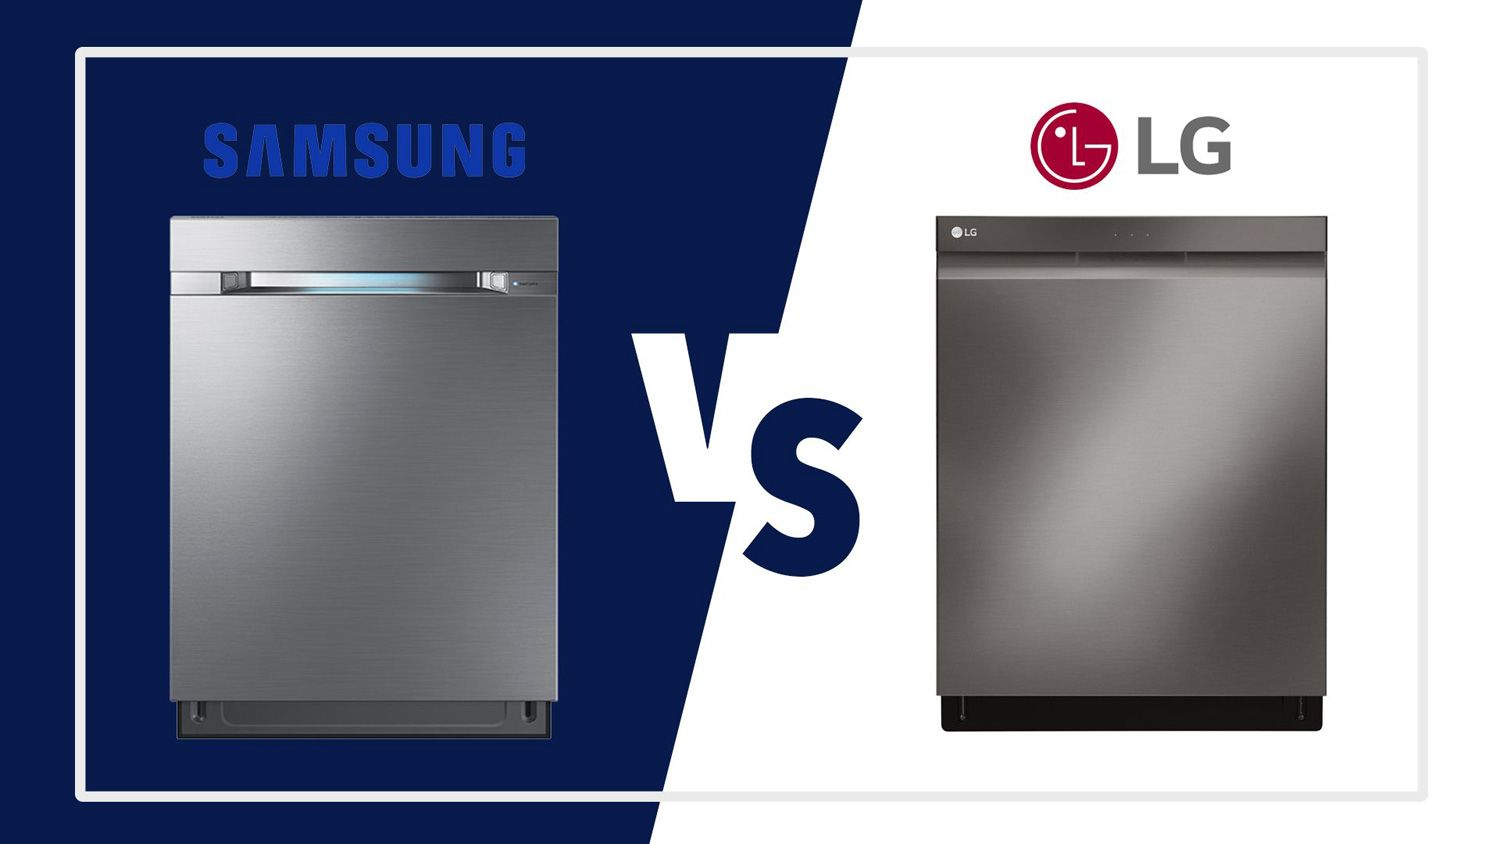 Samsung Vs Lg Dishwashers 2020 Review Smart Wifi Quiet Performance Samsung Appliances Quiet Dishwashers Modern Dishwashers